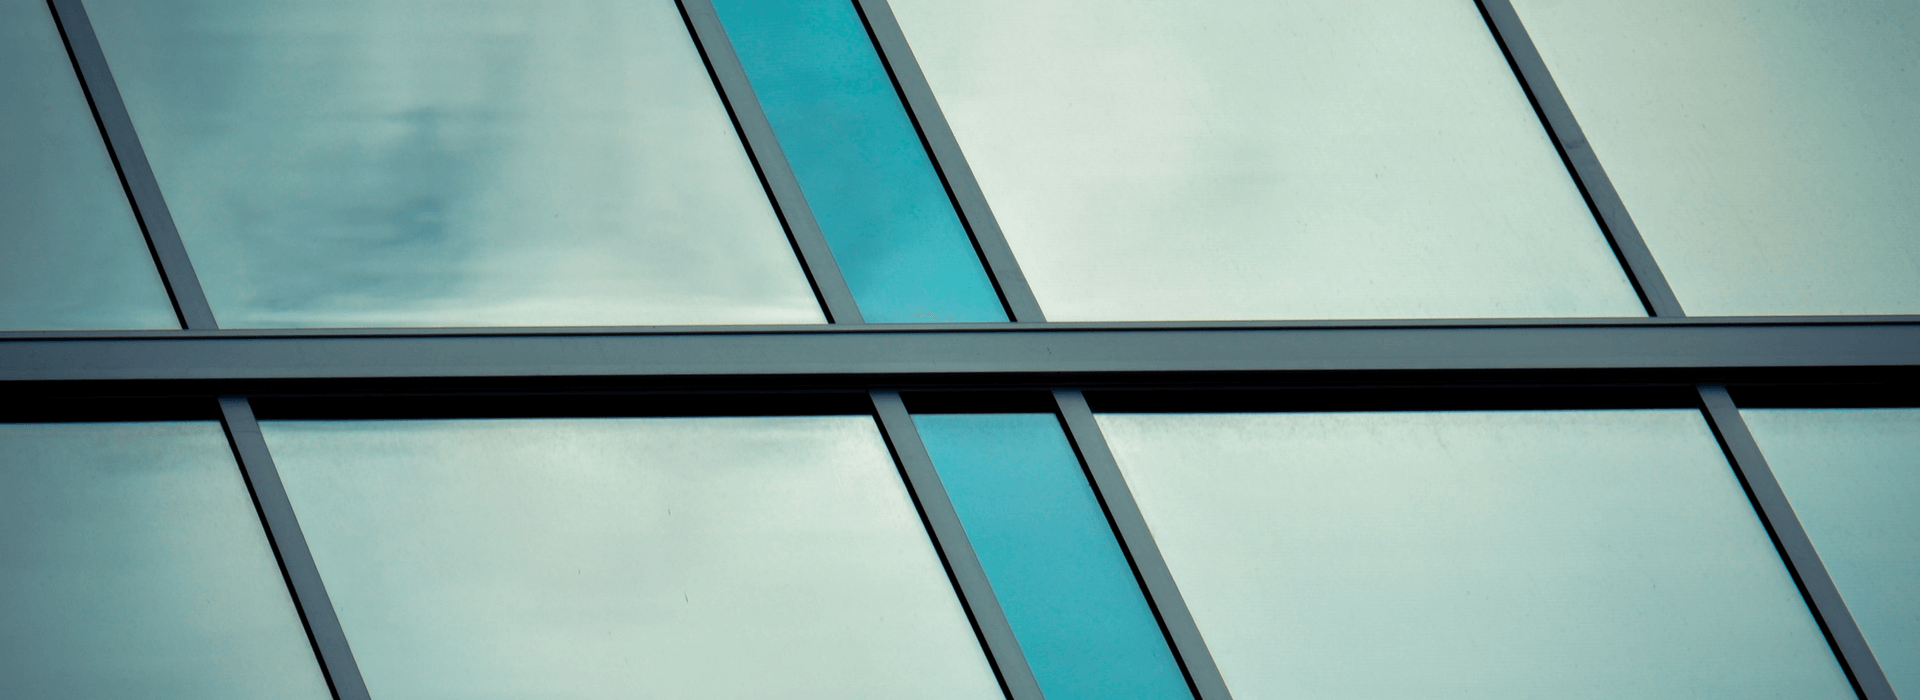 office-glass-window-.png